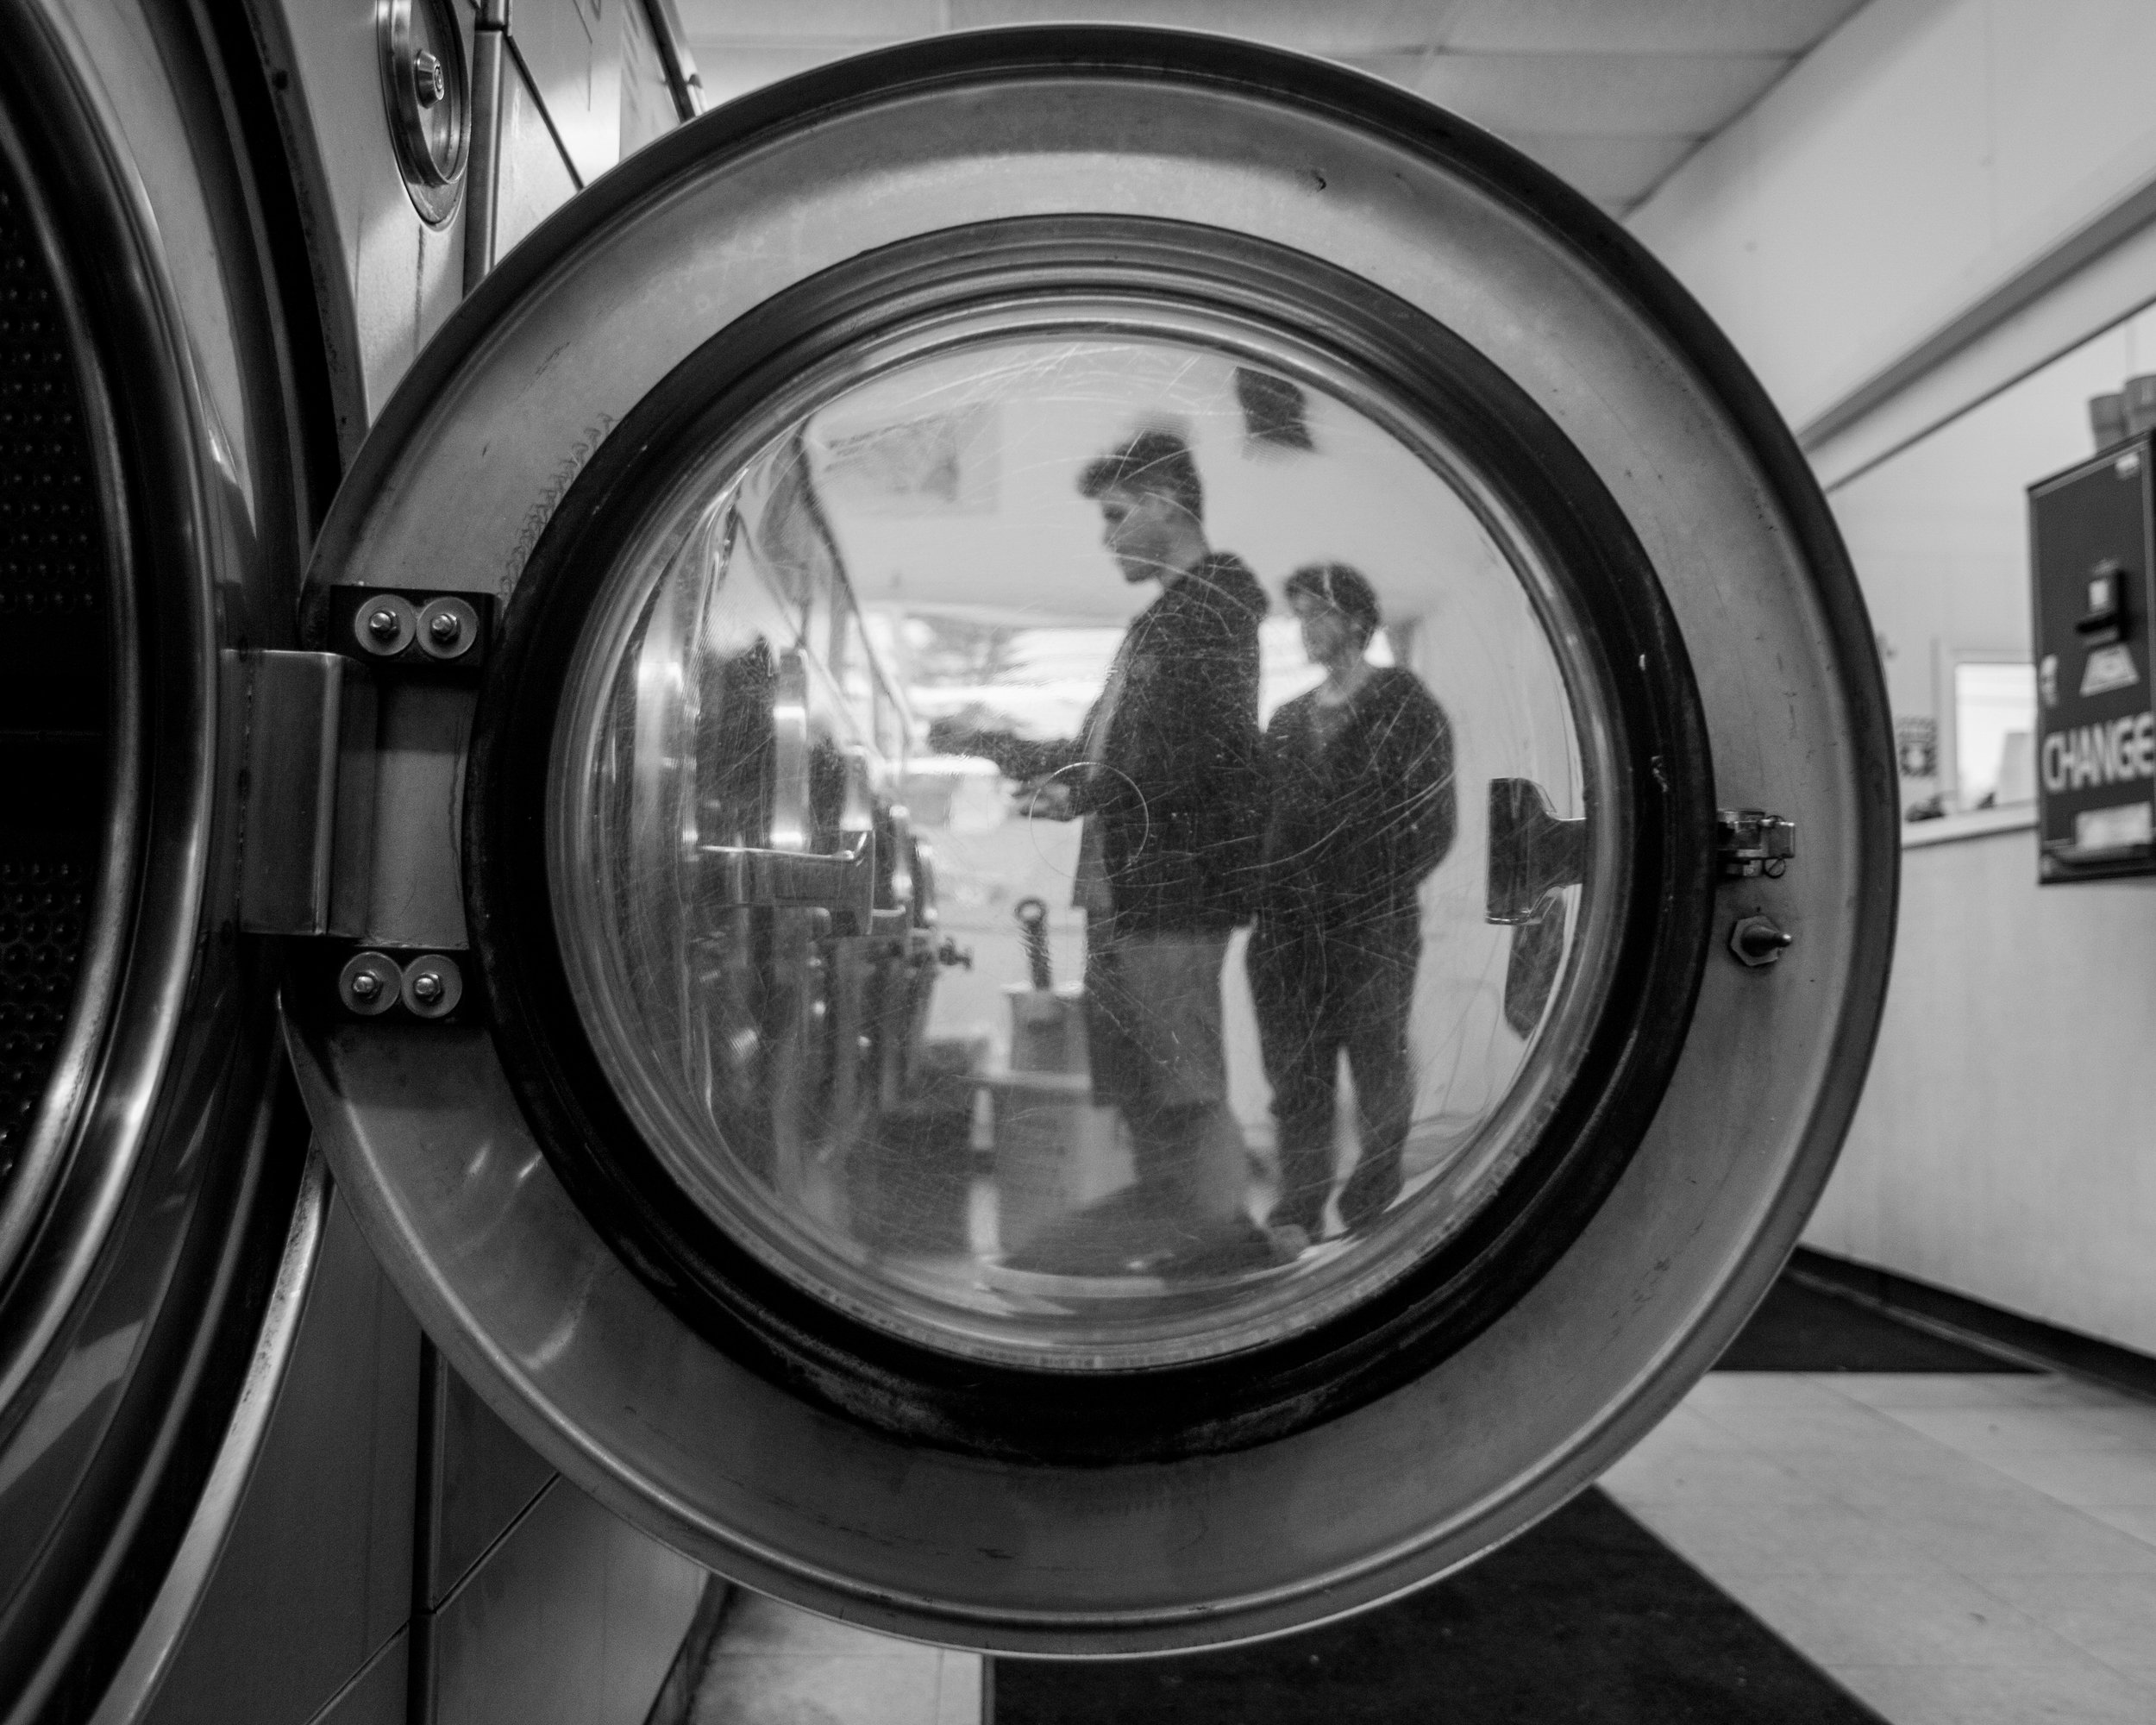 In the black and white photograph, two figures, who appear to be young men, are framed by an open washing machine door. The door is mostly transparent, though it does blur the figures slightly. The photograph is taken low to the ground, facing down the line of washing machines in a laundromat. One figure seems to be about to put money into the machine, and the other person stands behind.